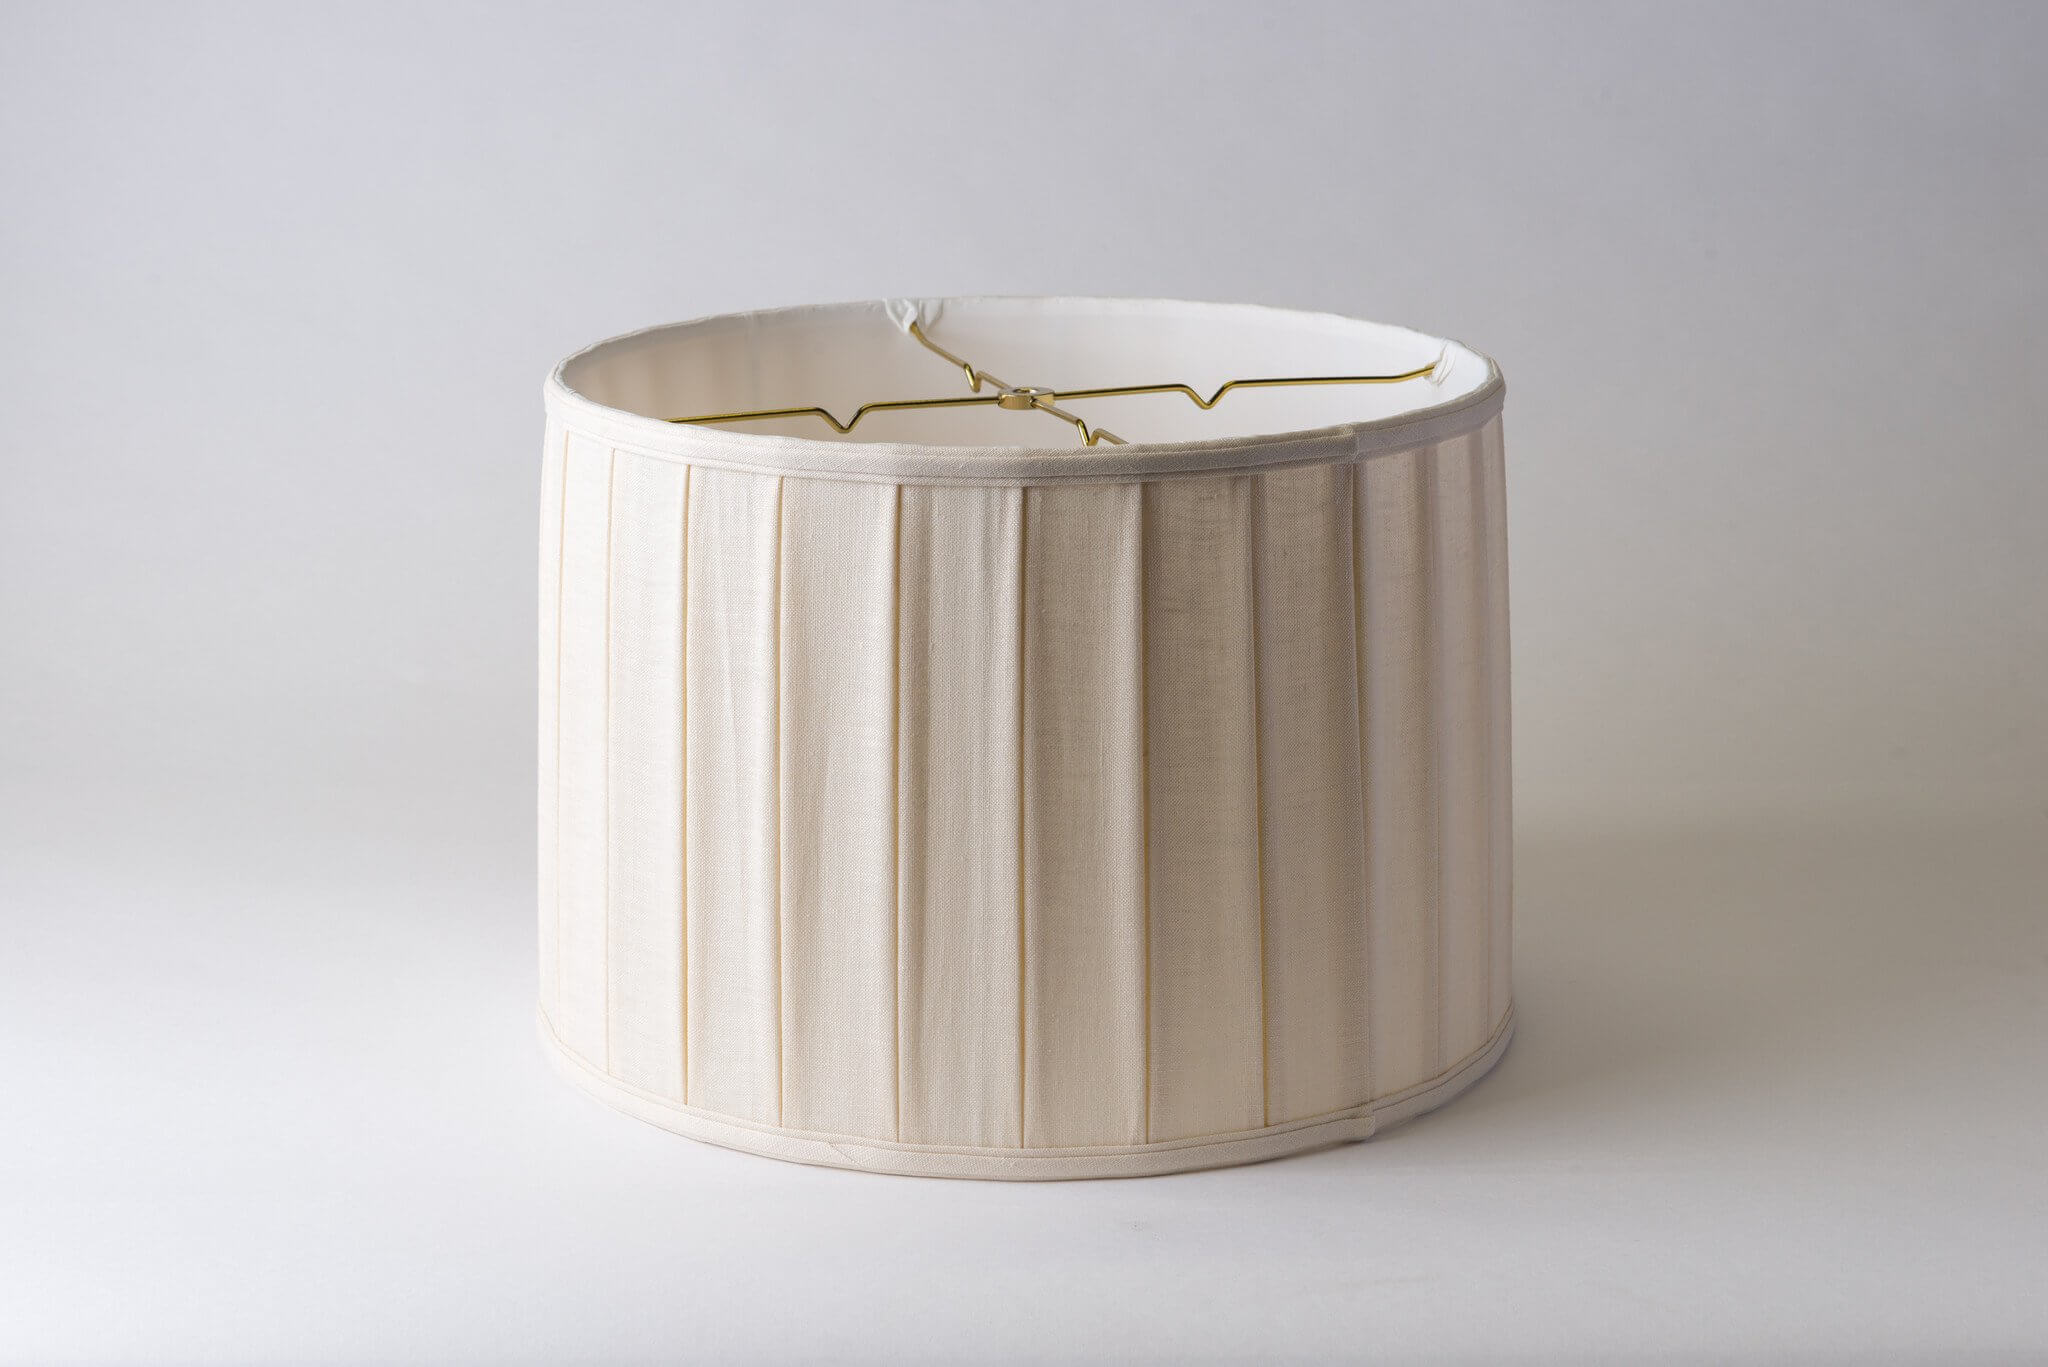 https://www.hotel-lamps.com/resources/assets/images/product_images/Linen_Wide_Box_Pleat_Drum_16x17x11.5_Eggshell.jpg